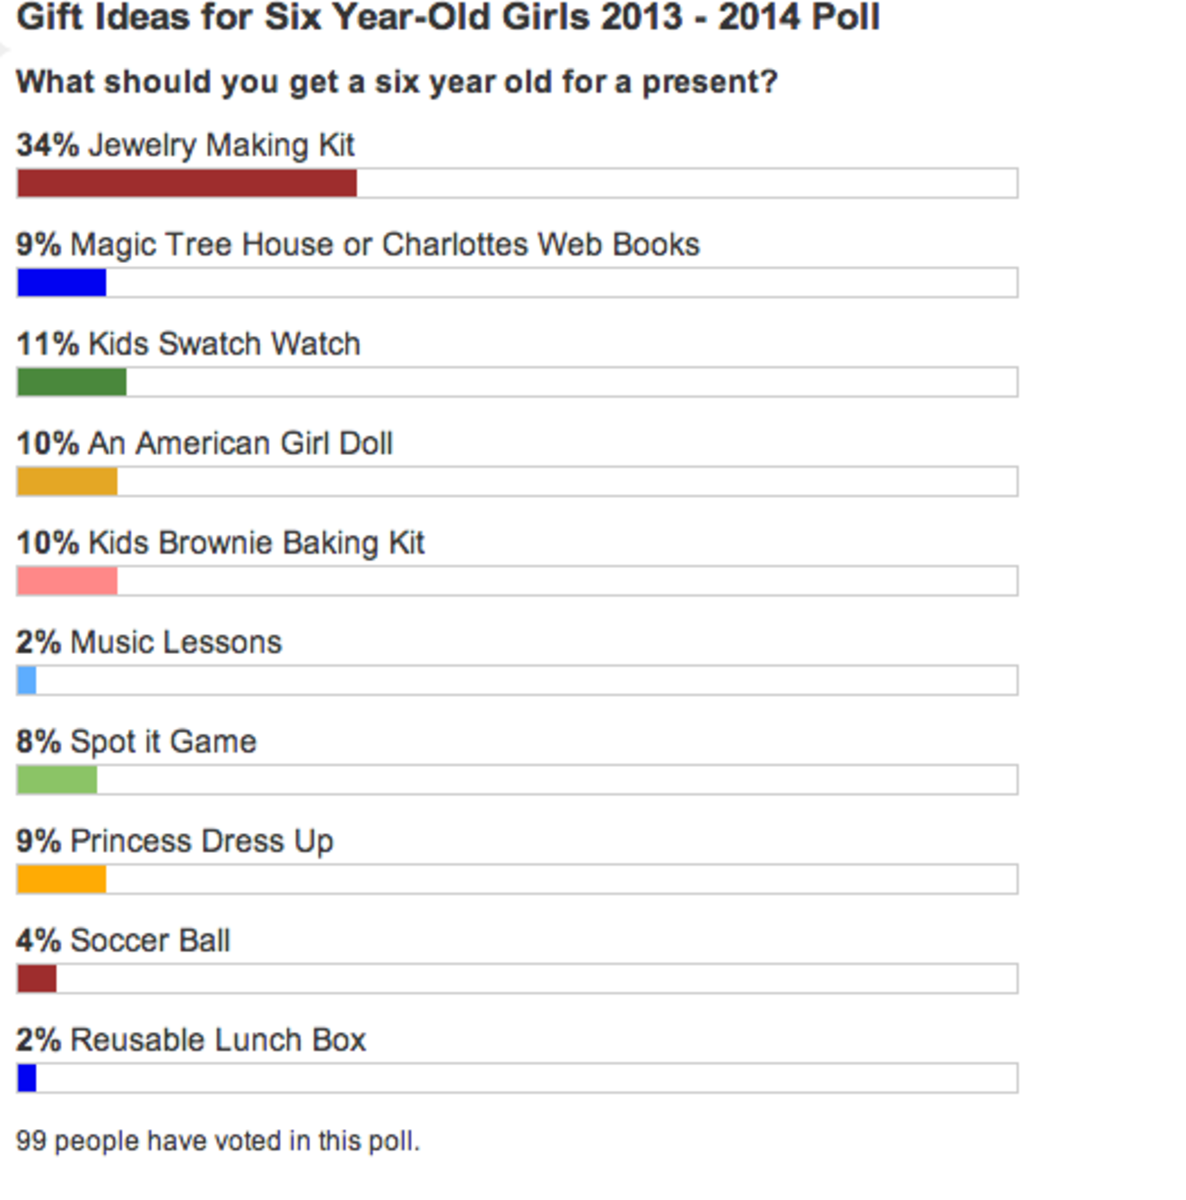 Poll results as of 2014